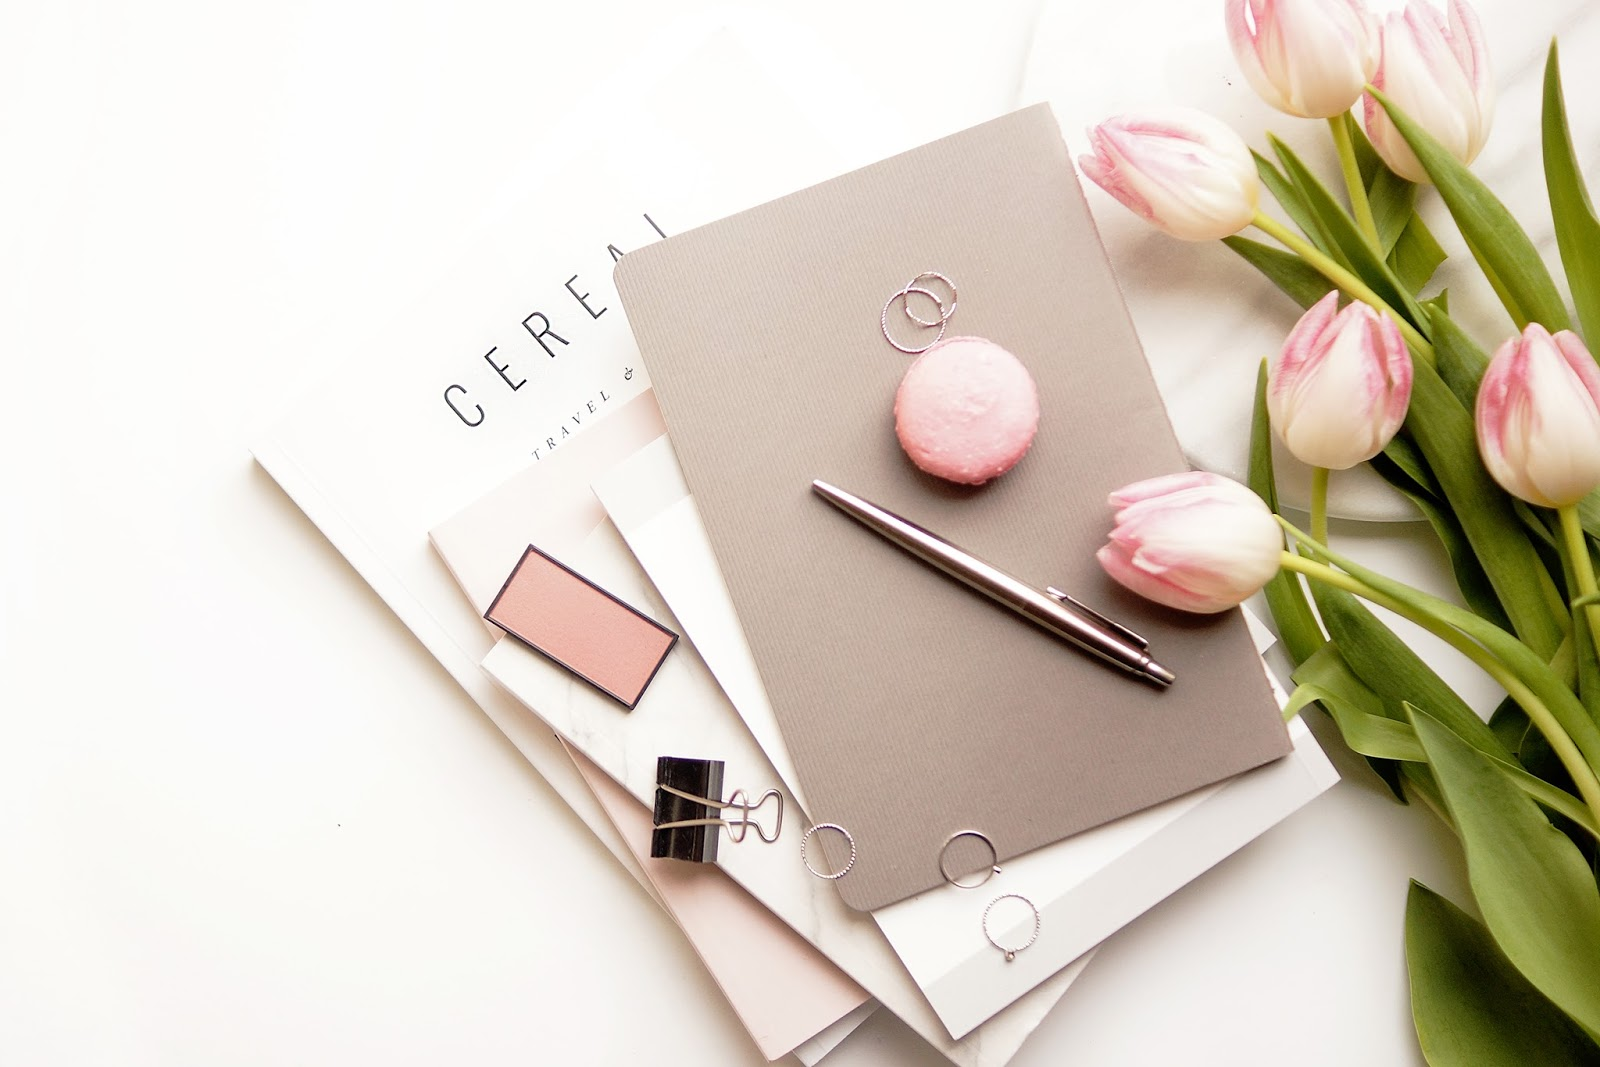 barely-there-beauty-blog-lifestyle-photography-flatlay-happiness-wellness-wellbeing-tips